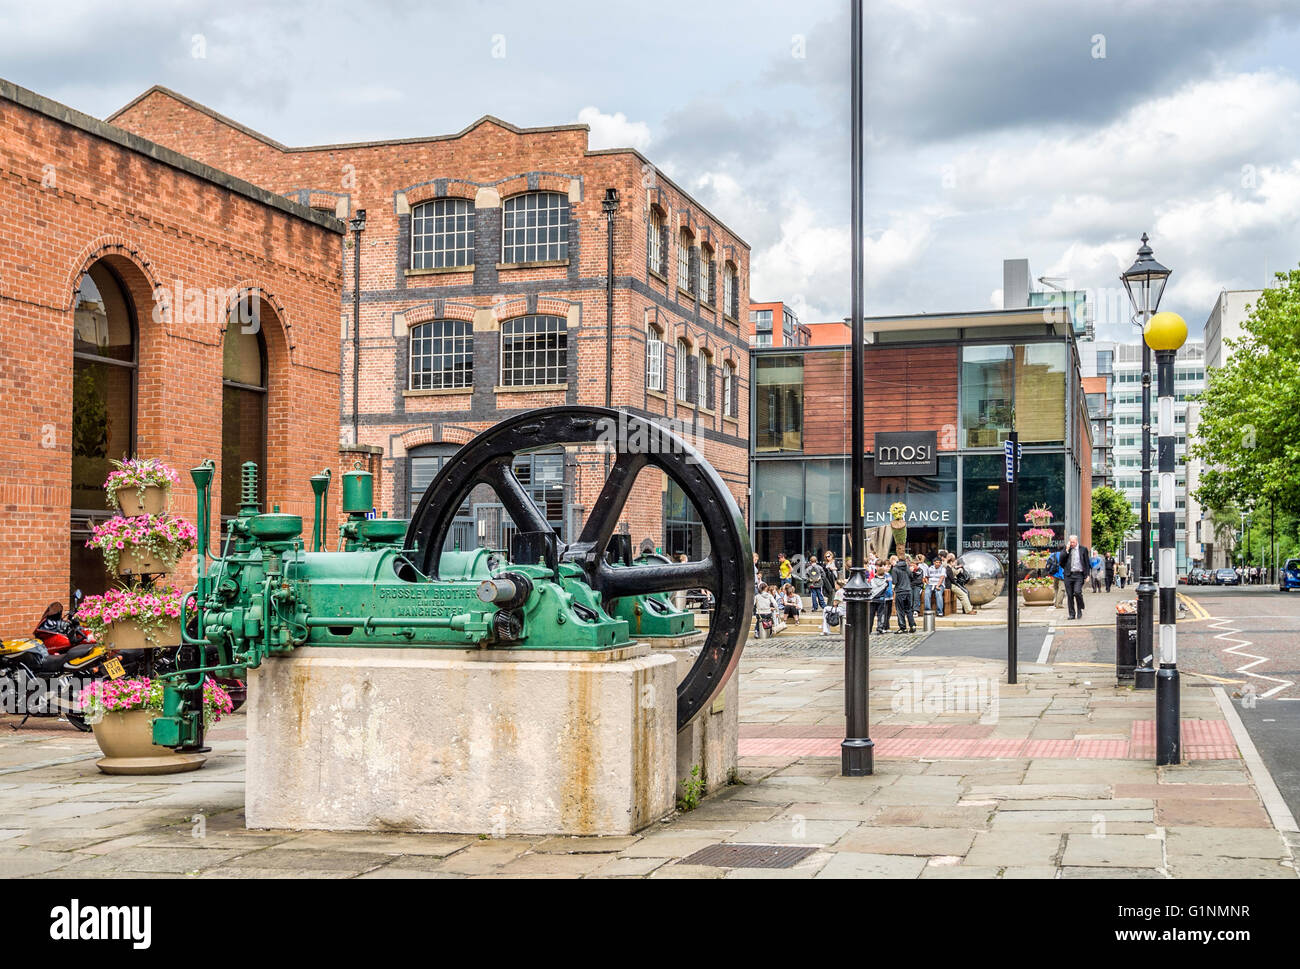 Das Museum of Science and Industry in Manchester (MOSI) in Manchester, England, Vereinigtes Königreich Stockbild